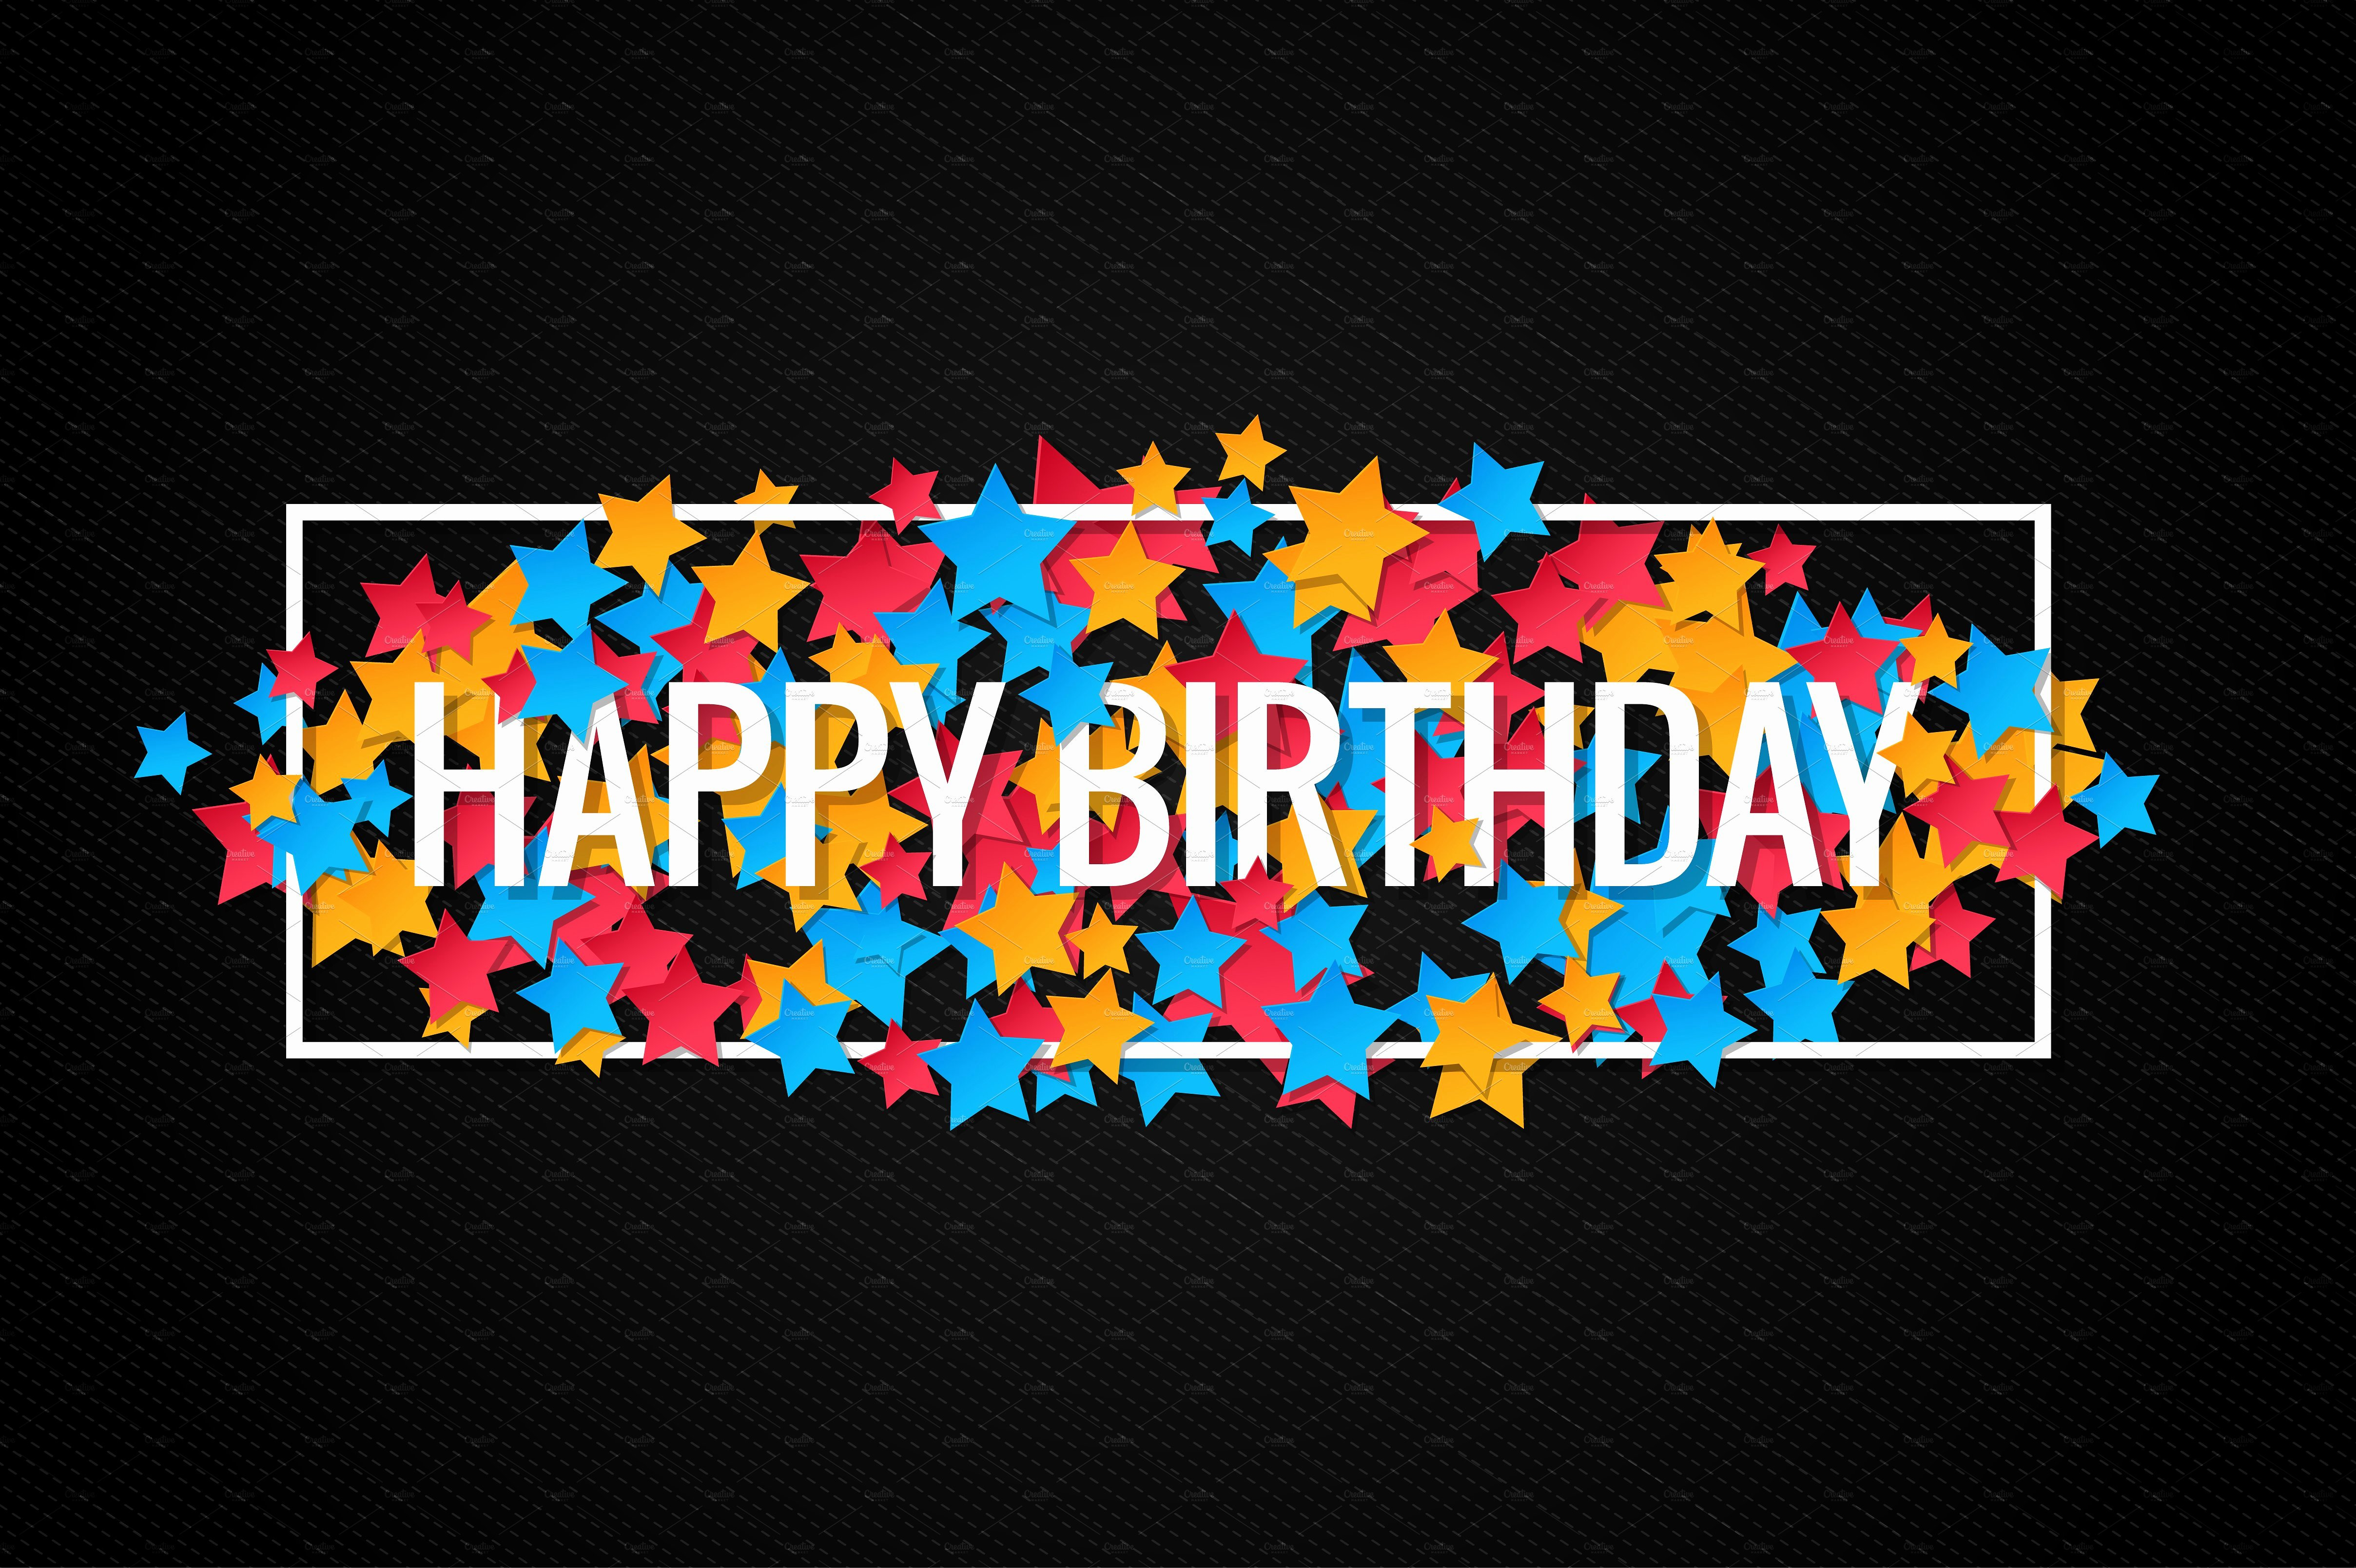 Happy Birthday Sign Template Elegant 13 Birthday Party Banners